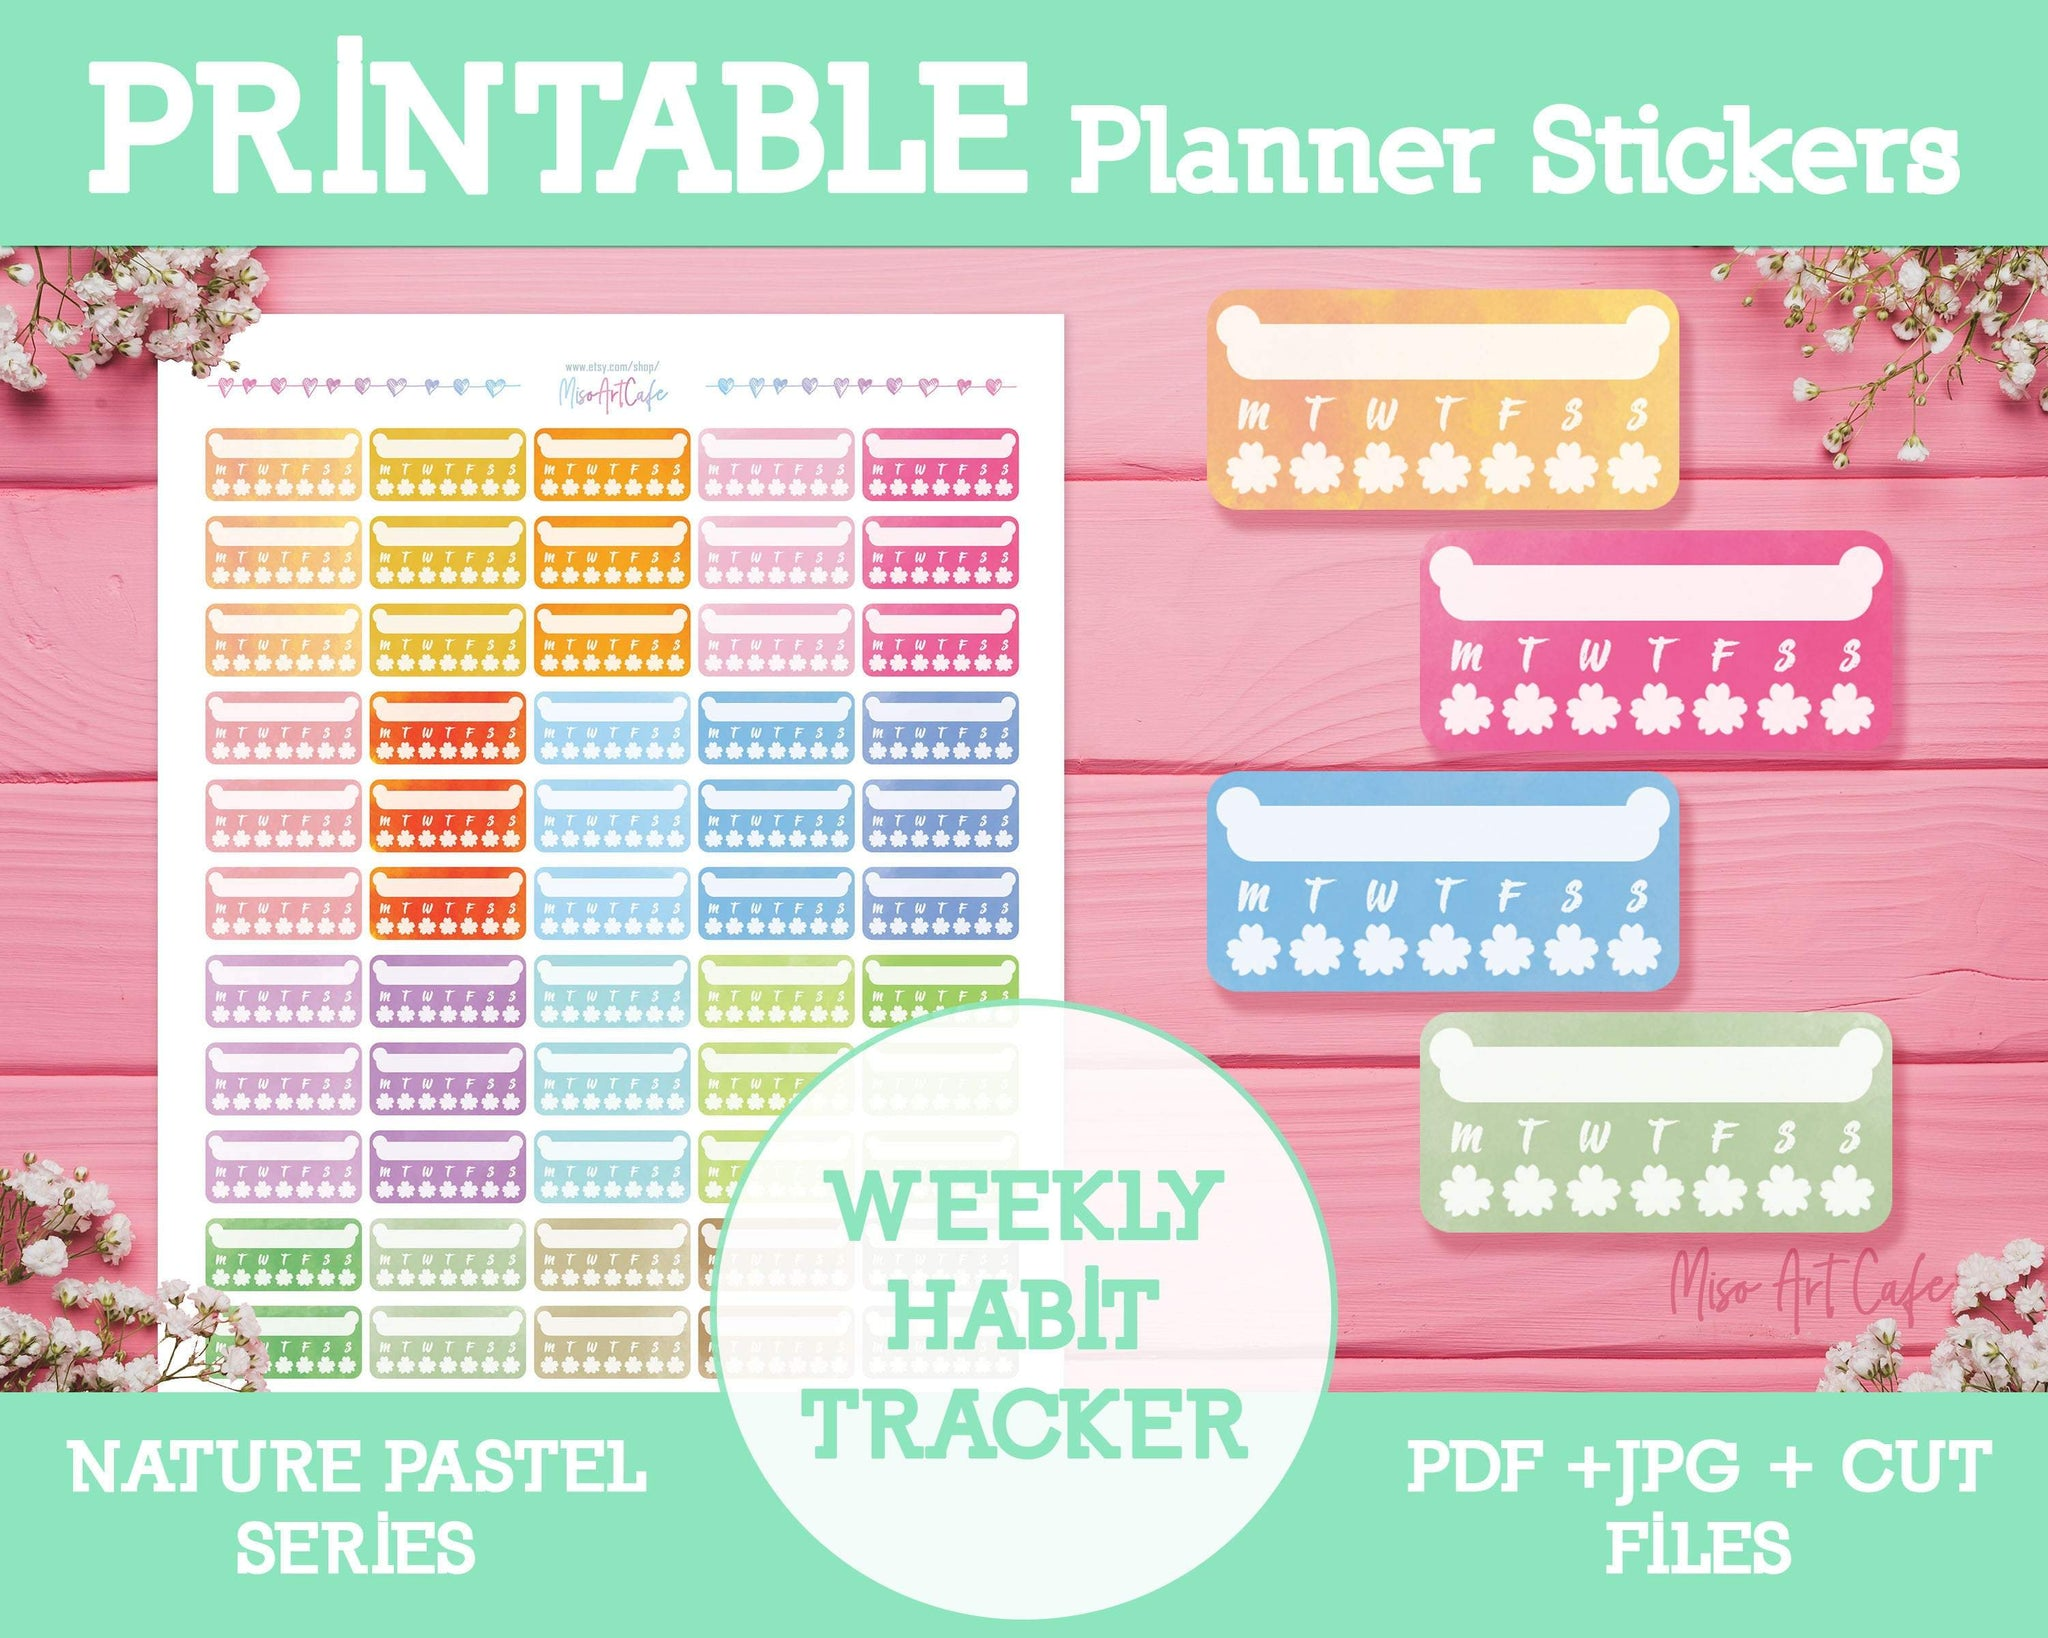 Printable Weekly Habit Trackers - Nature Pastel Planner Stickers - Miso Art Cafe